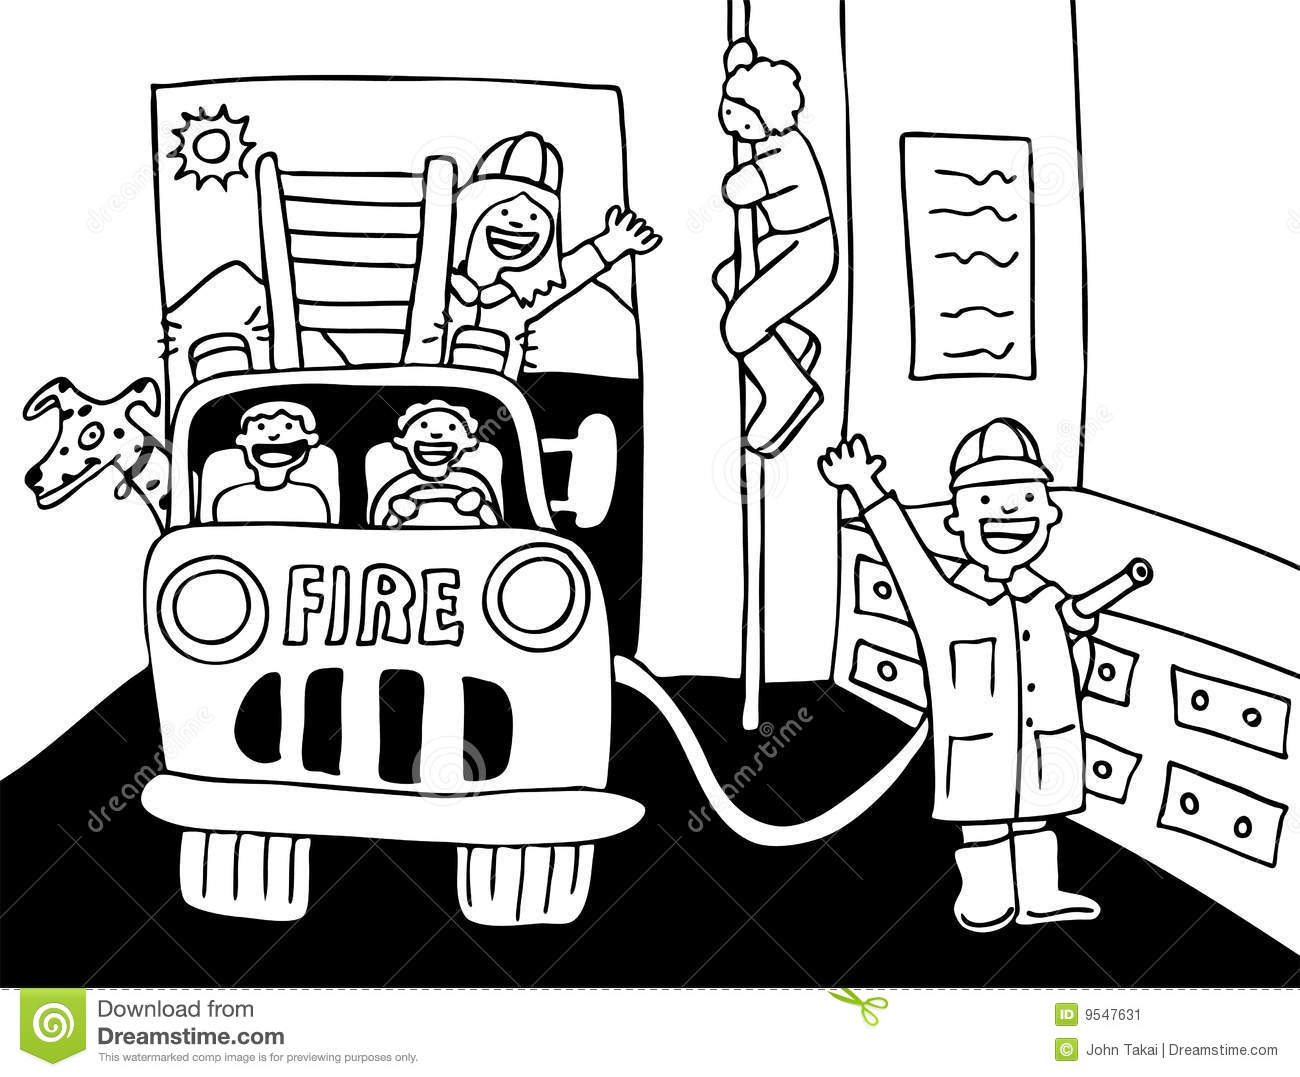 coloring house on fire clipart black and white black and white fire house clipart 20 free cliparts on coloring and clipart black fire house white